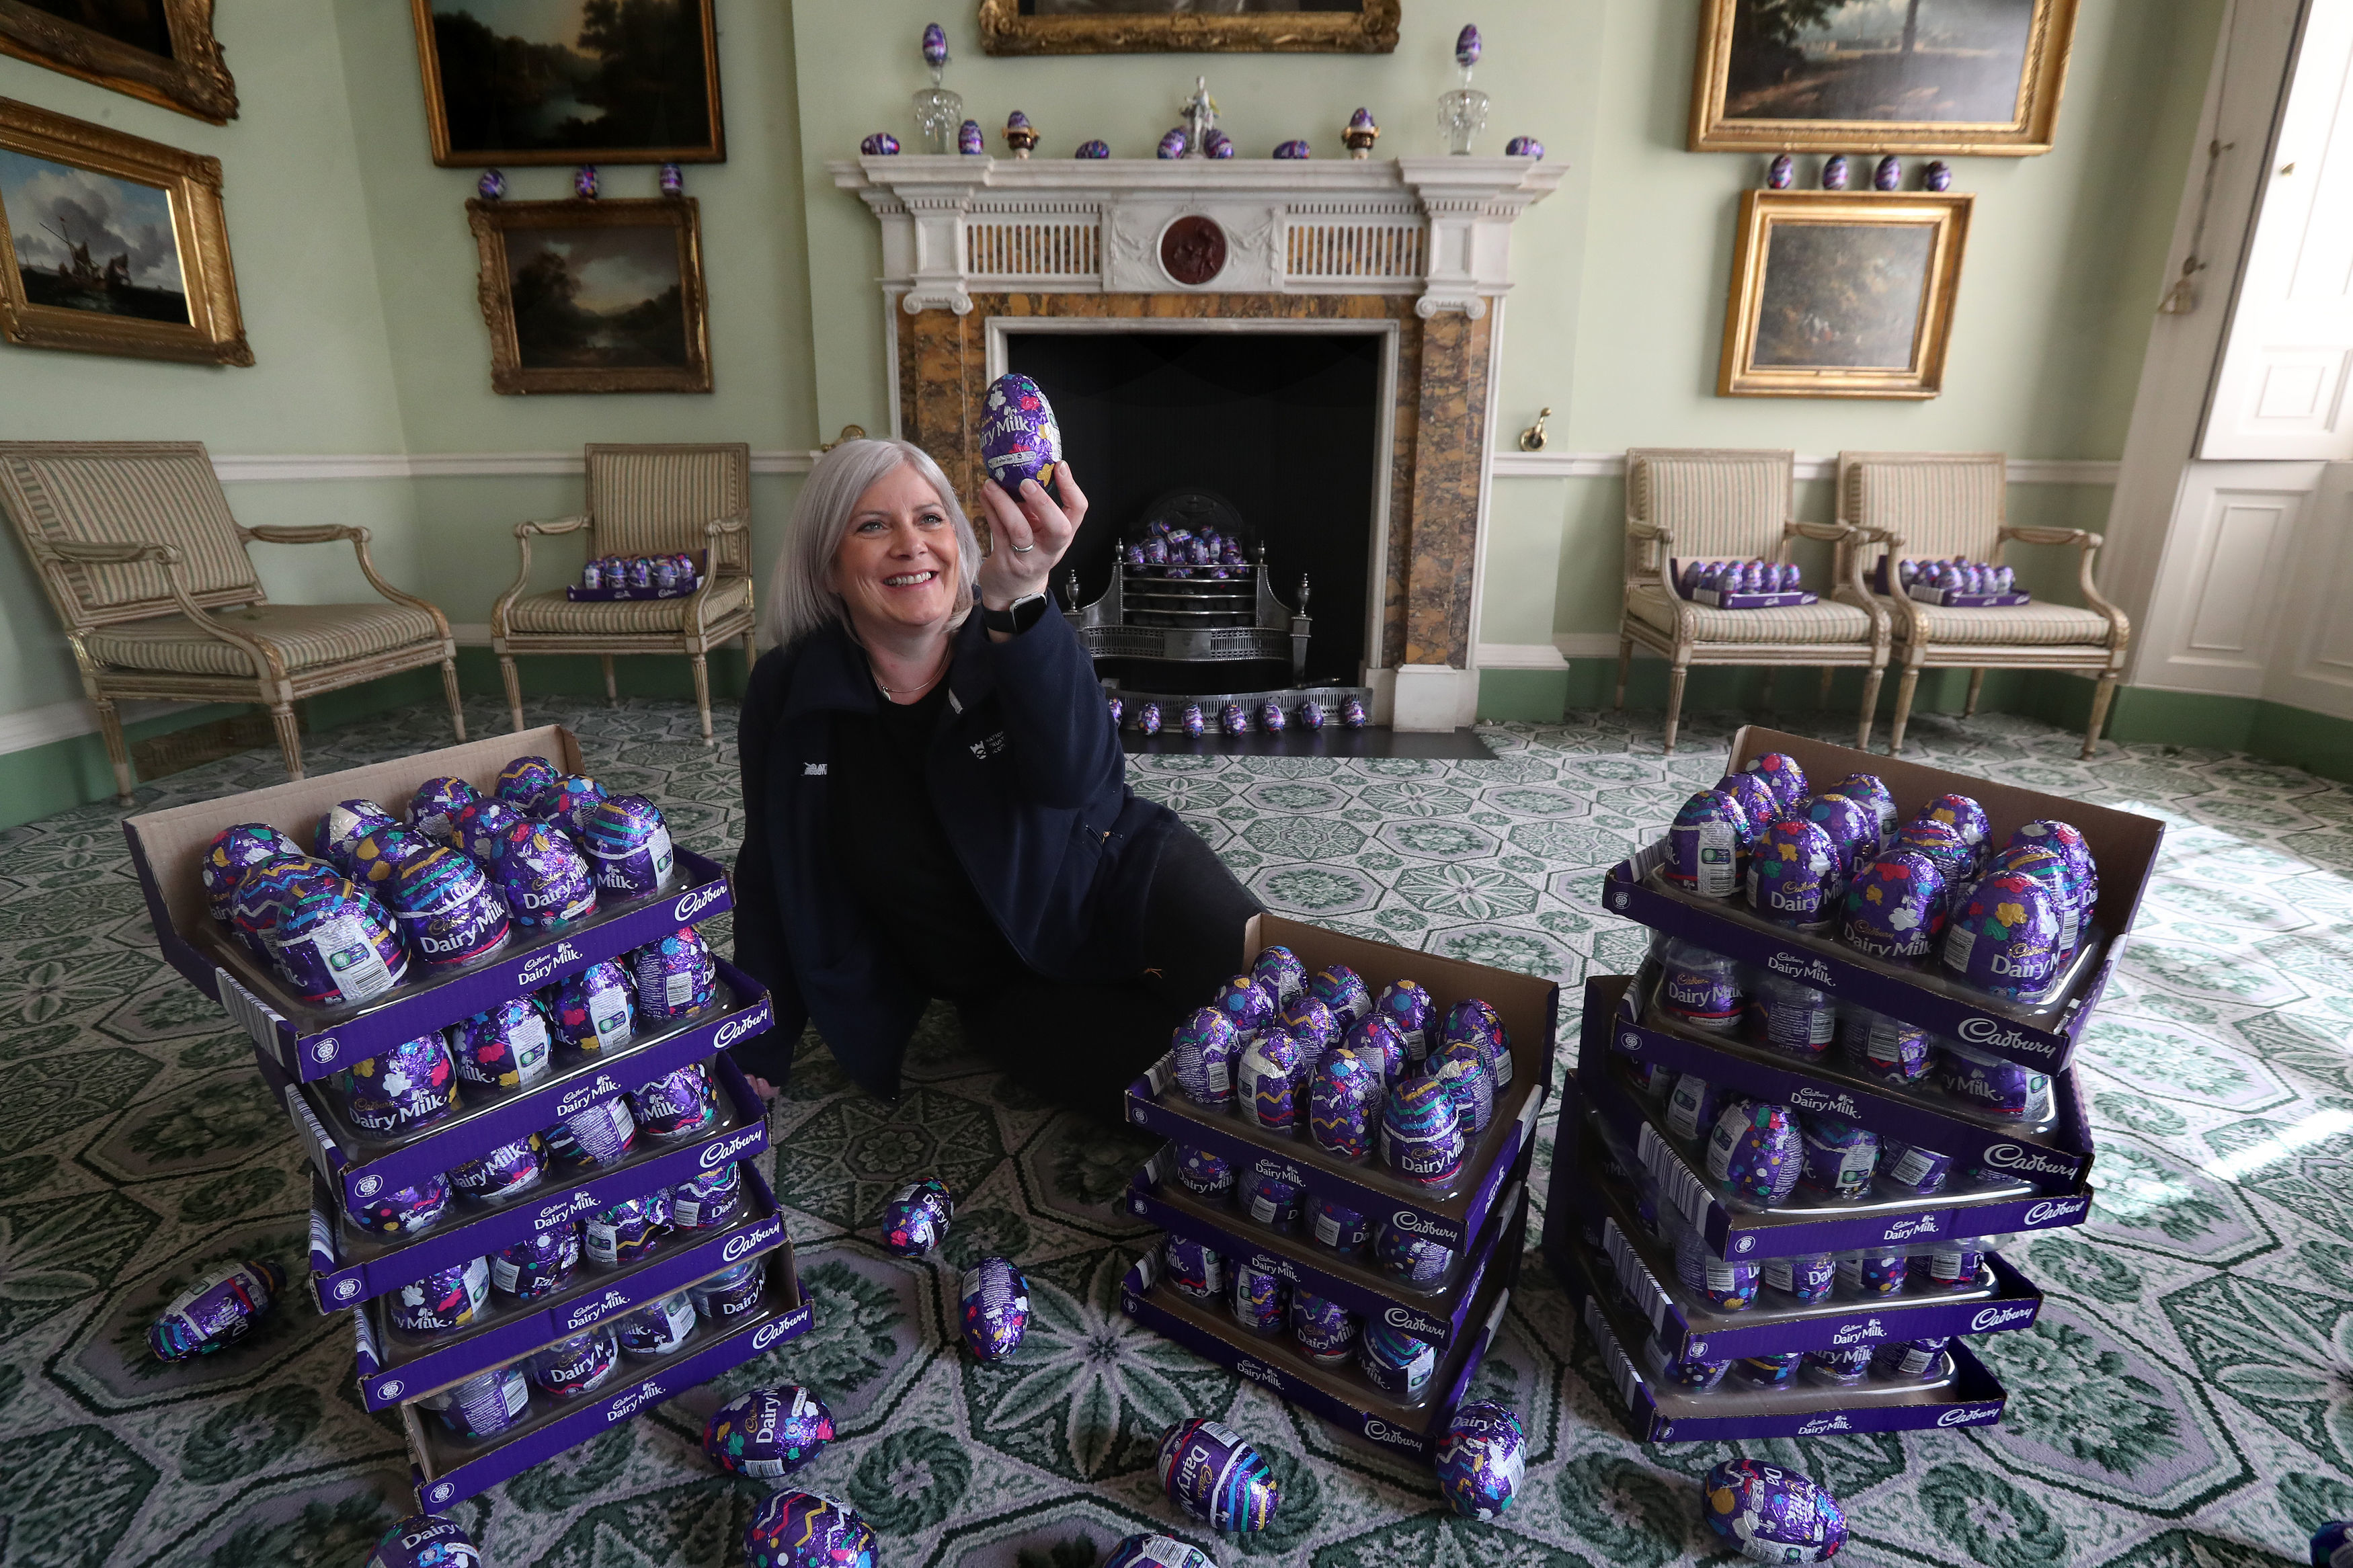 Claire Grant from the National Trust for Scotland with a pile of Easter eggs in the Drawing Room at the National Trust's Georgian House in Edinburgh, as the Trust are trying to find homes for more than 15,000 chocolate eggs that are left over from Easter egg hunts that were cancelled at their properties around the UK due to the coronavirus lockdown.